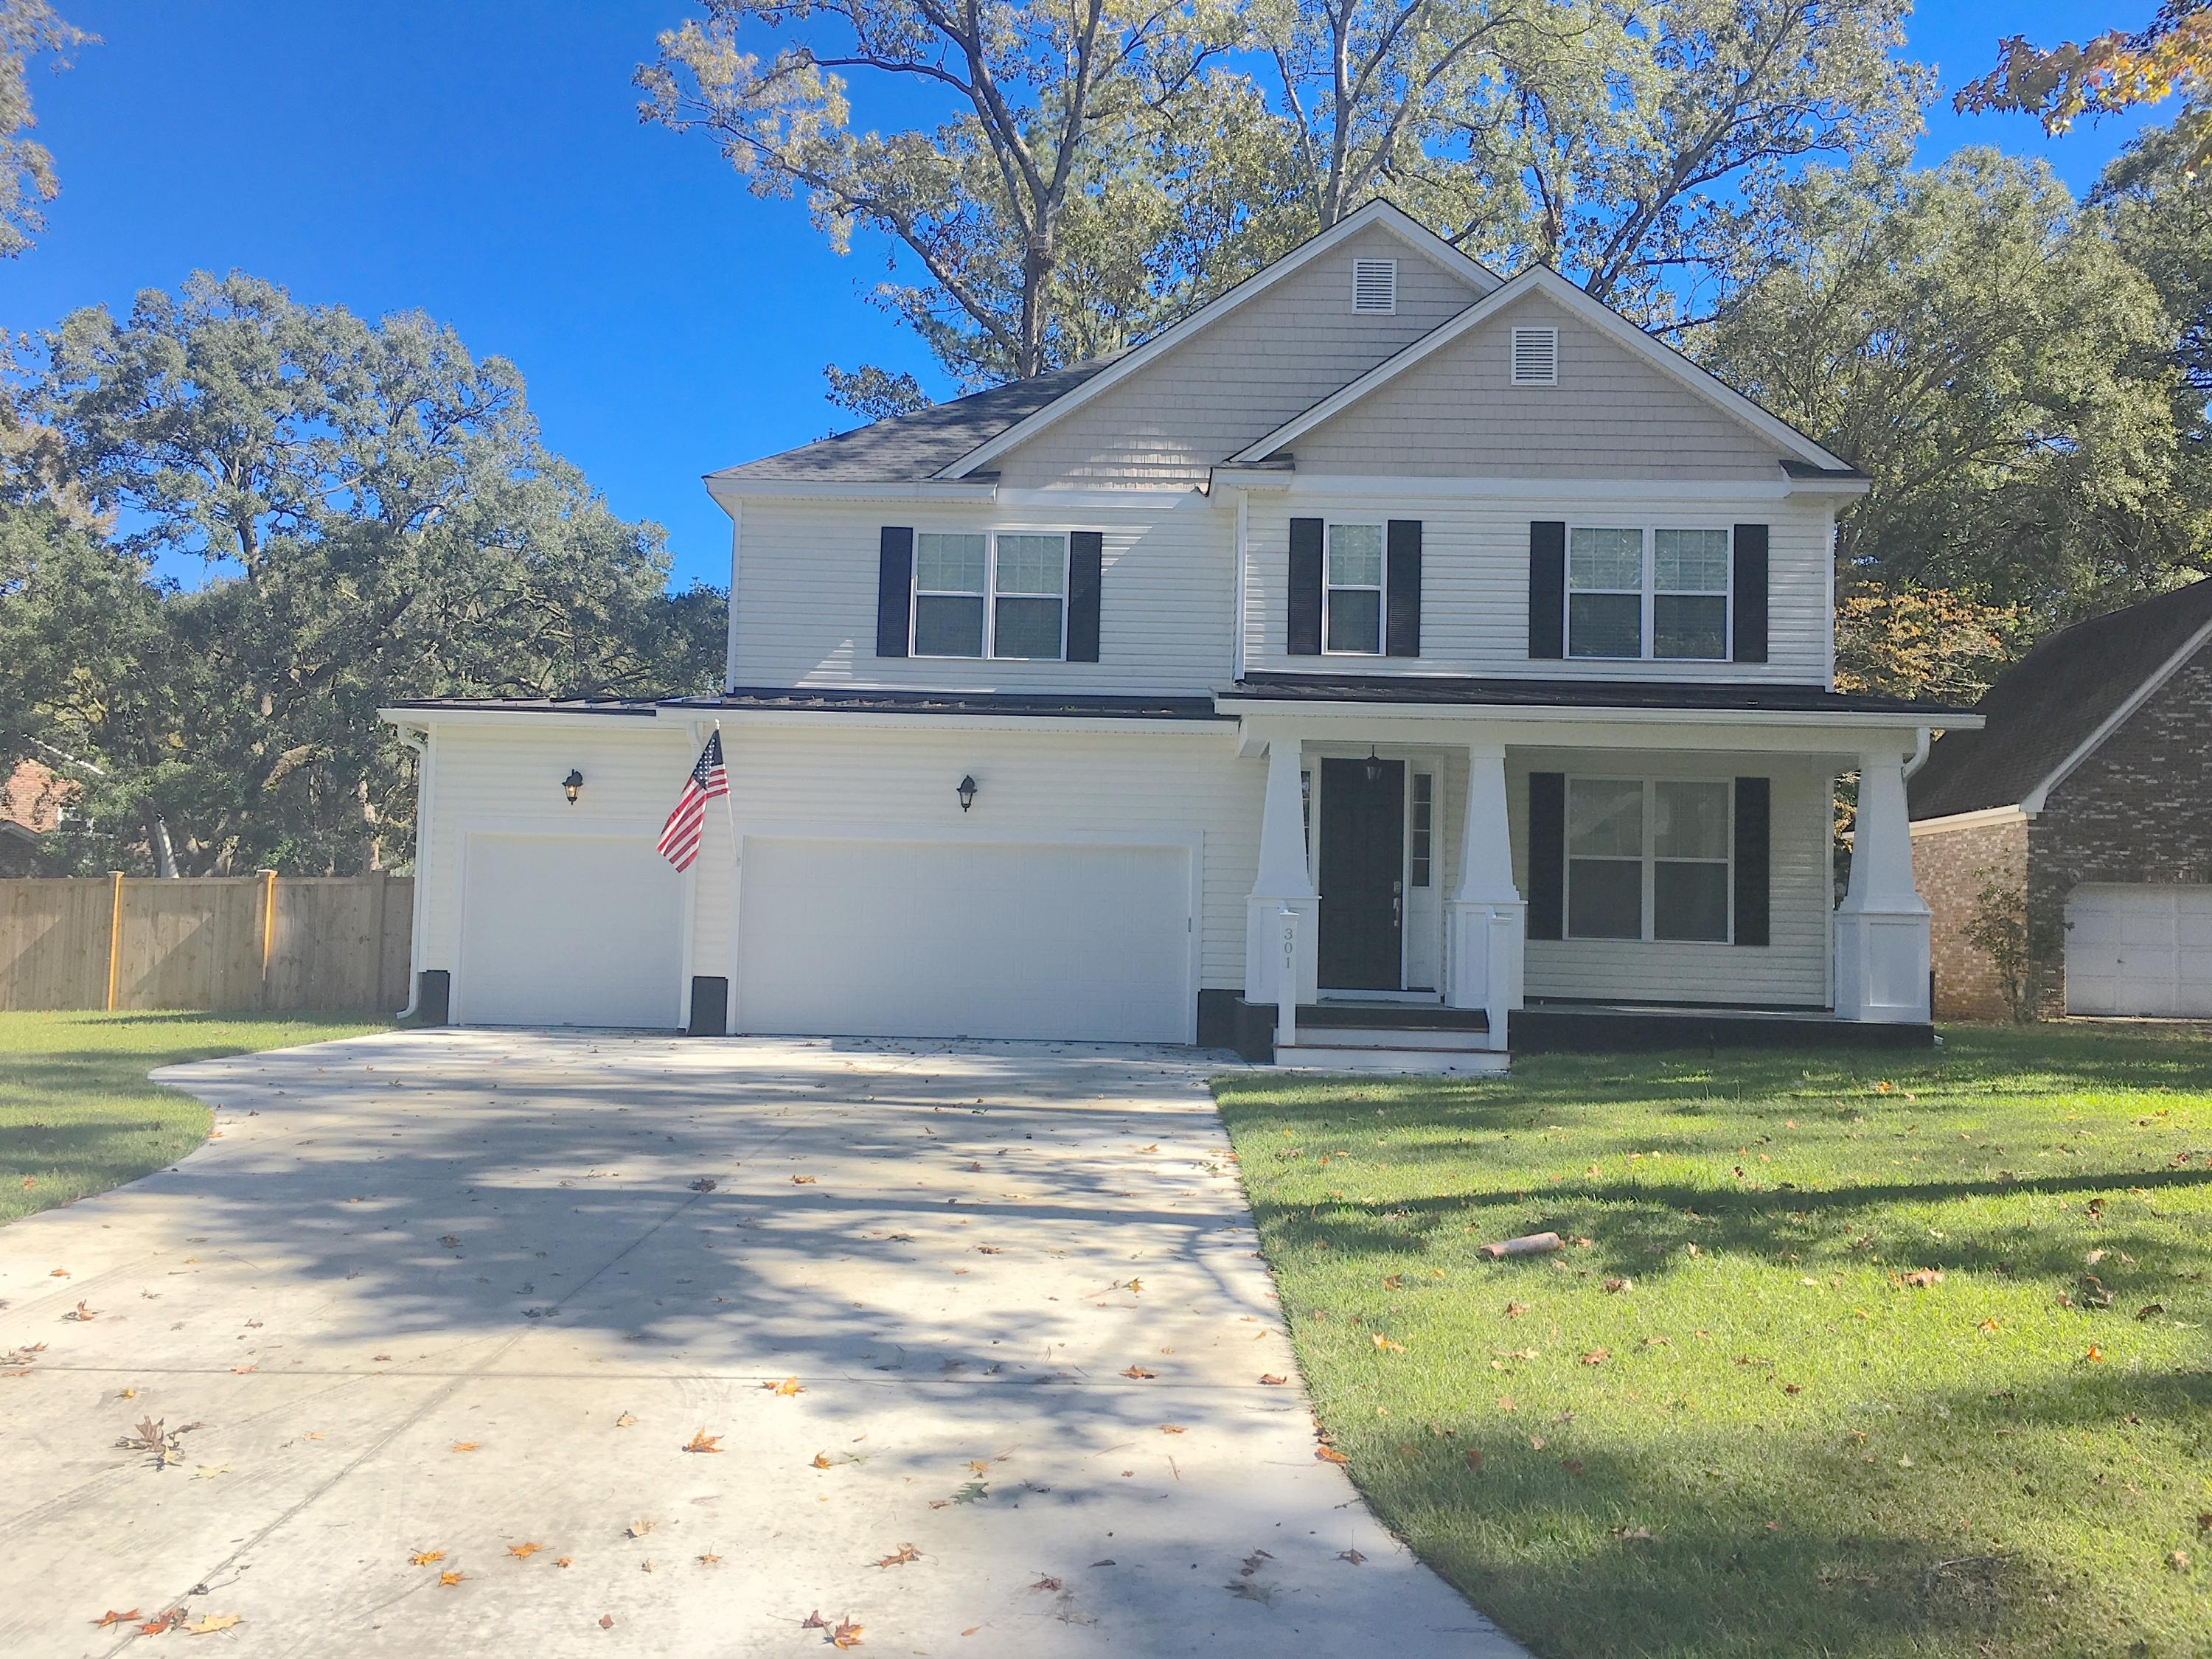 Photo of 301 Lakeview Dr, Summerville, SC 29485